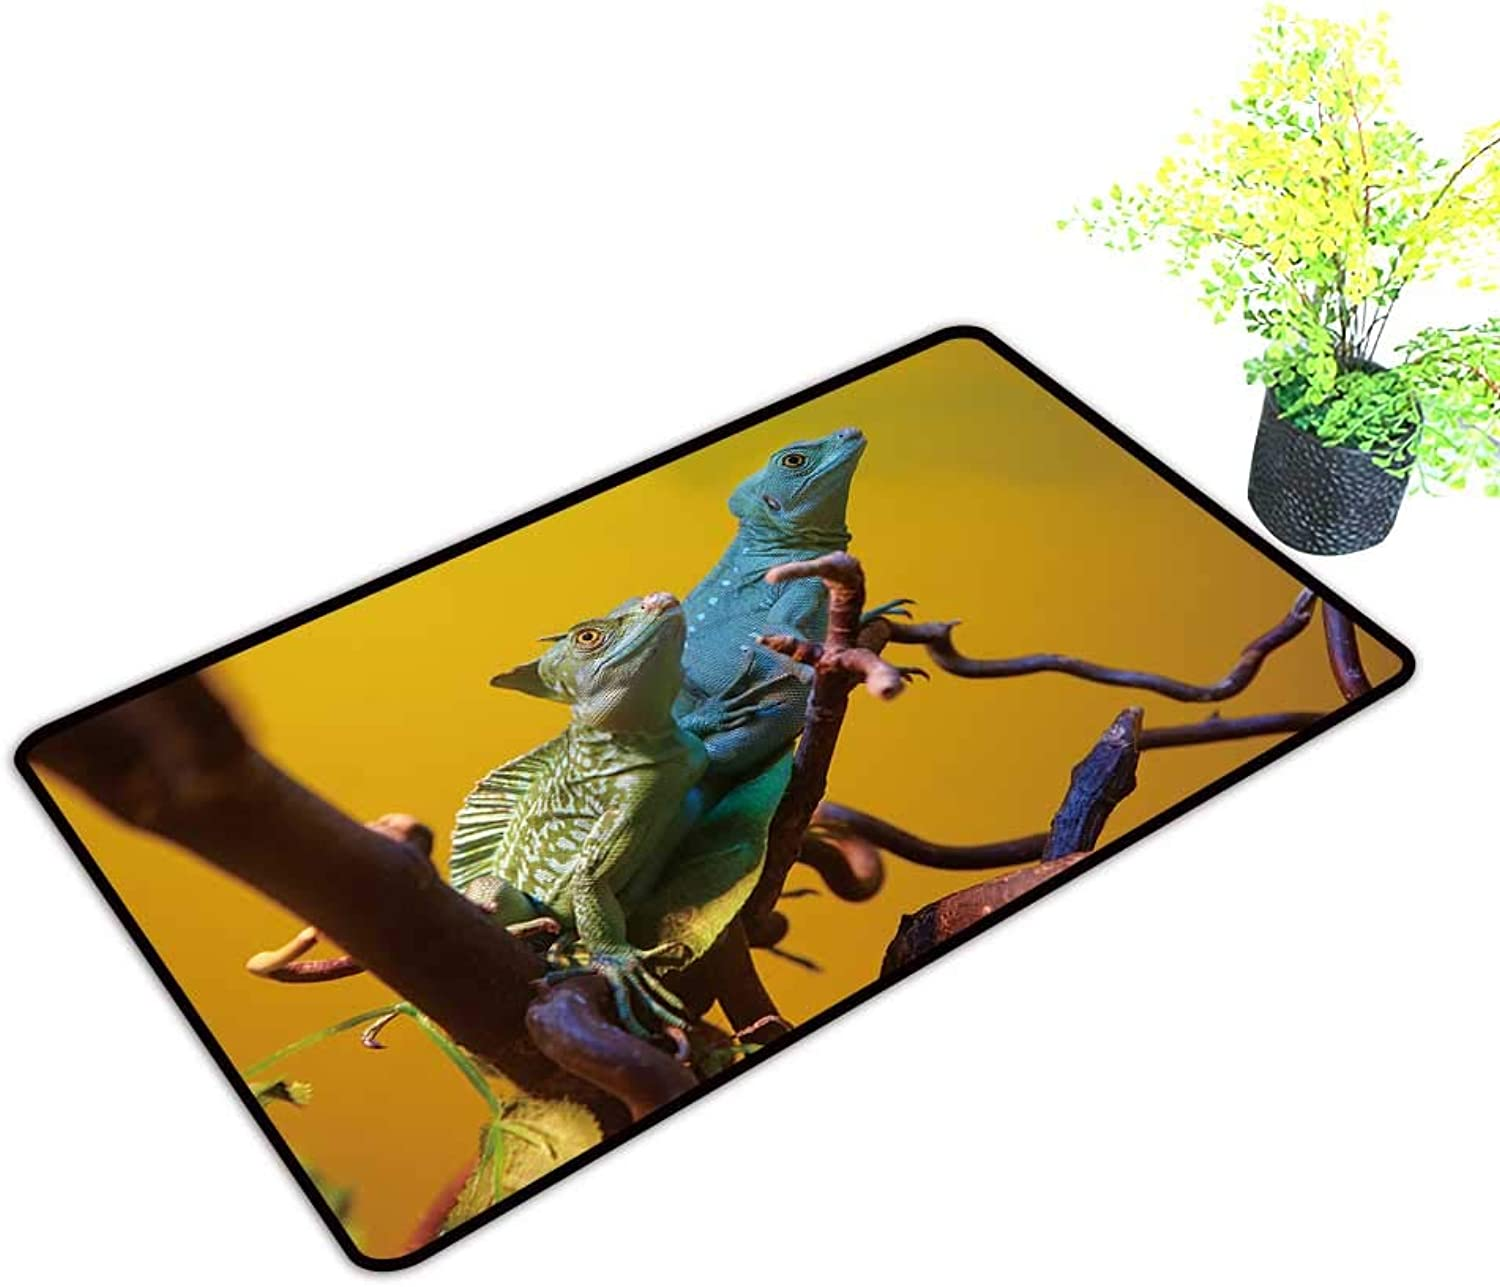 Gmnalahome Super Absorbs Mud Doormat Two Iguanas on a Dry Branch No Odor Durable Anti-Slip W39 x H19 INCH